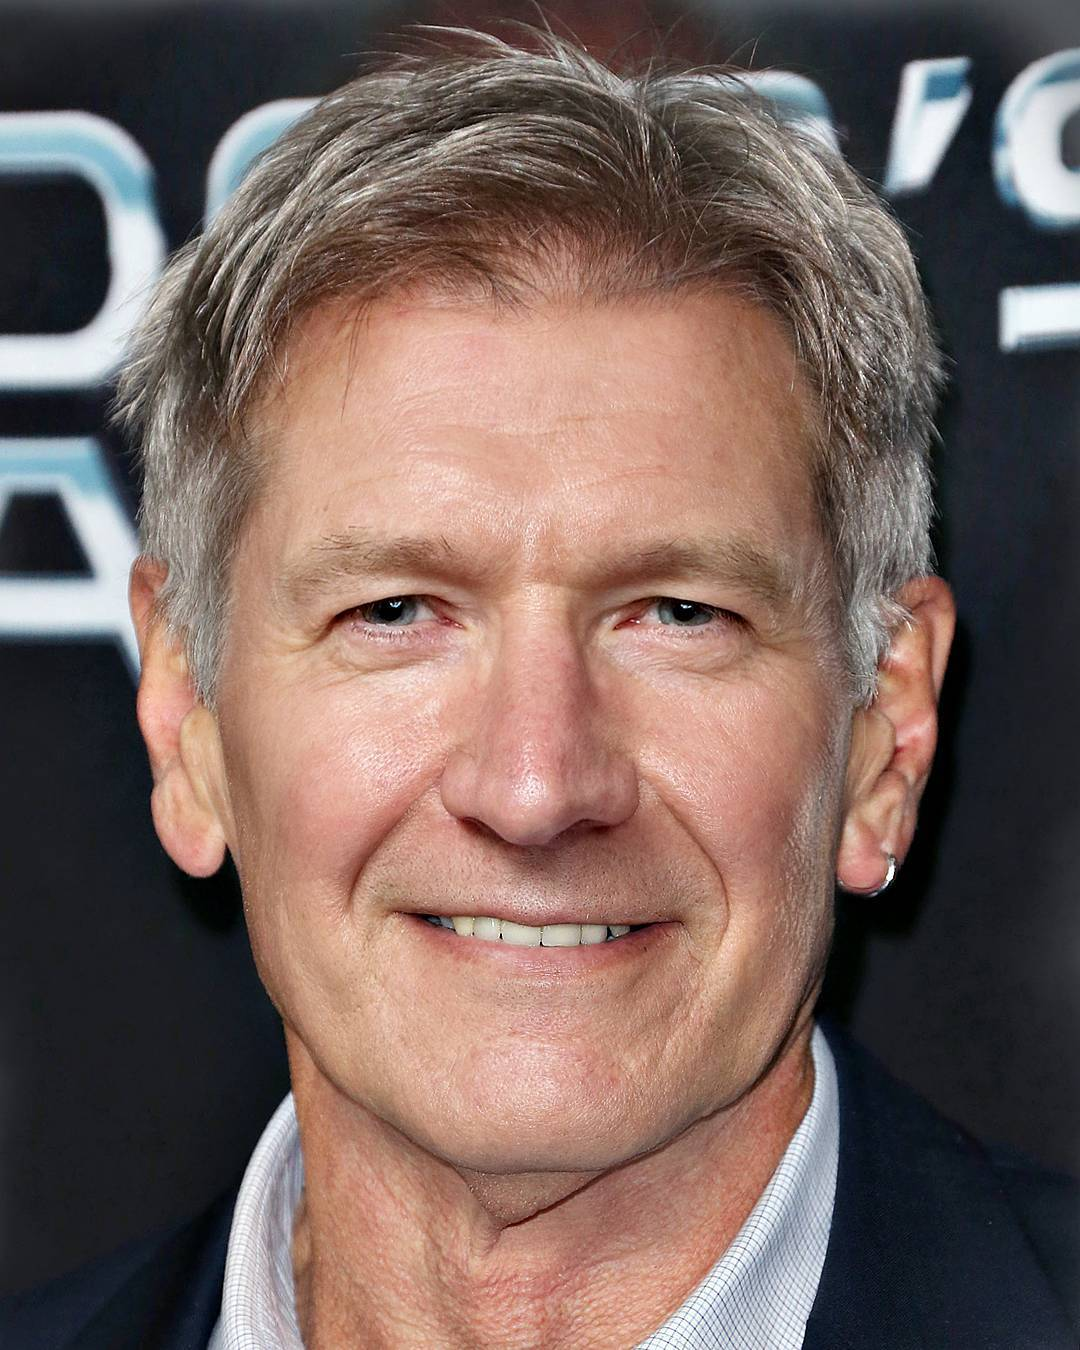 Photoshop Guru Fuses Celebrity Faces Together - Harrison Ford and Tim Cook